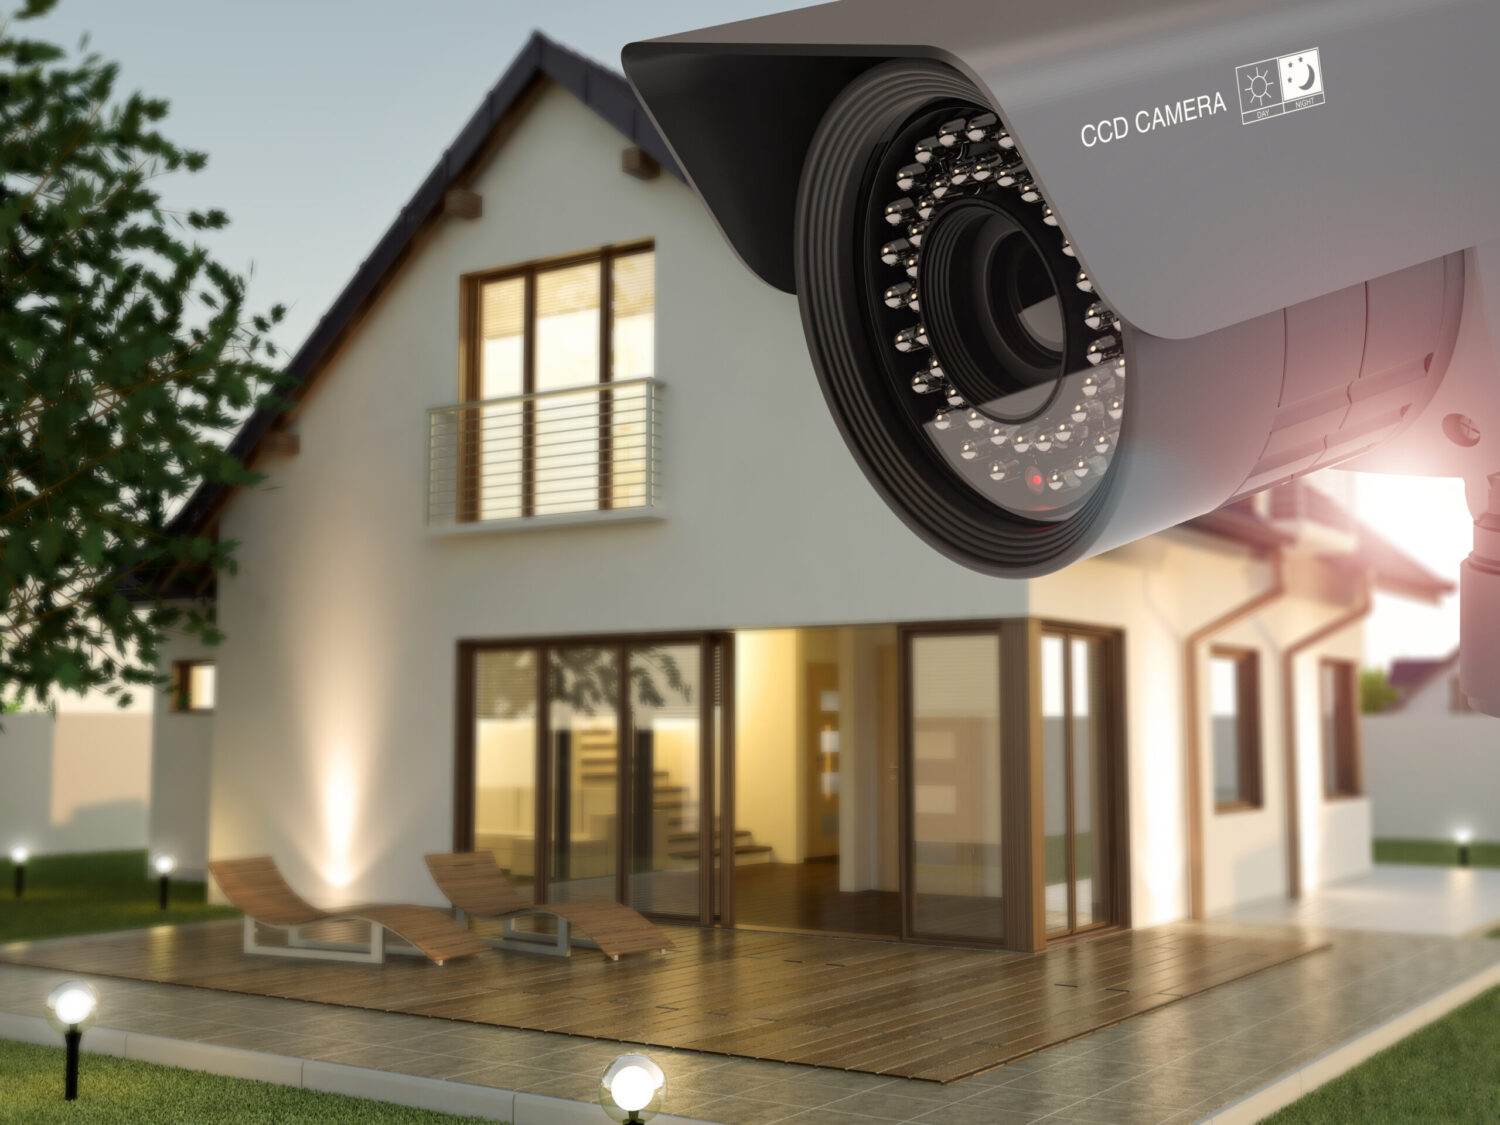 Security camera and home in the evening